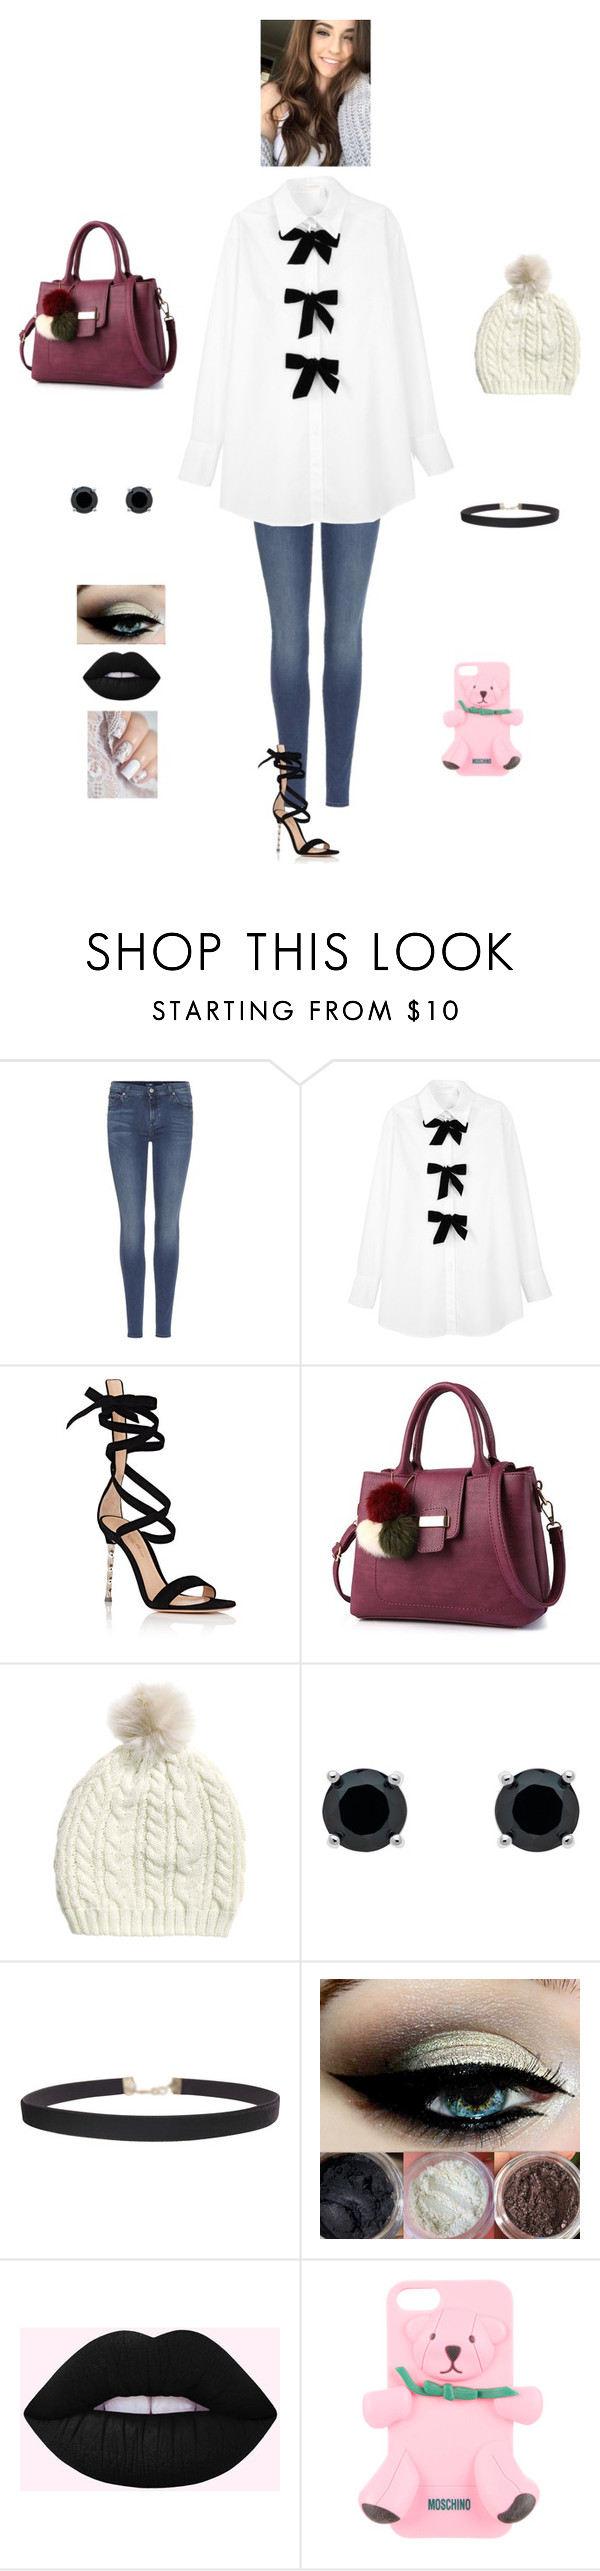 """""""S G"""" by queen-kaitlyn ❤ liked on Polyvore featuring 7 For All Mankind, See by Chloé, Gianvito Rossi, Monet, Humble Chic and Moschino"""